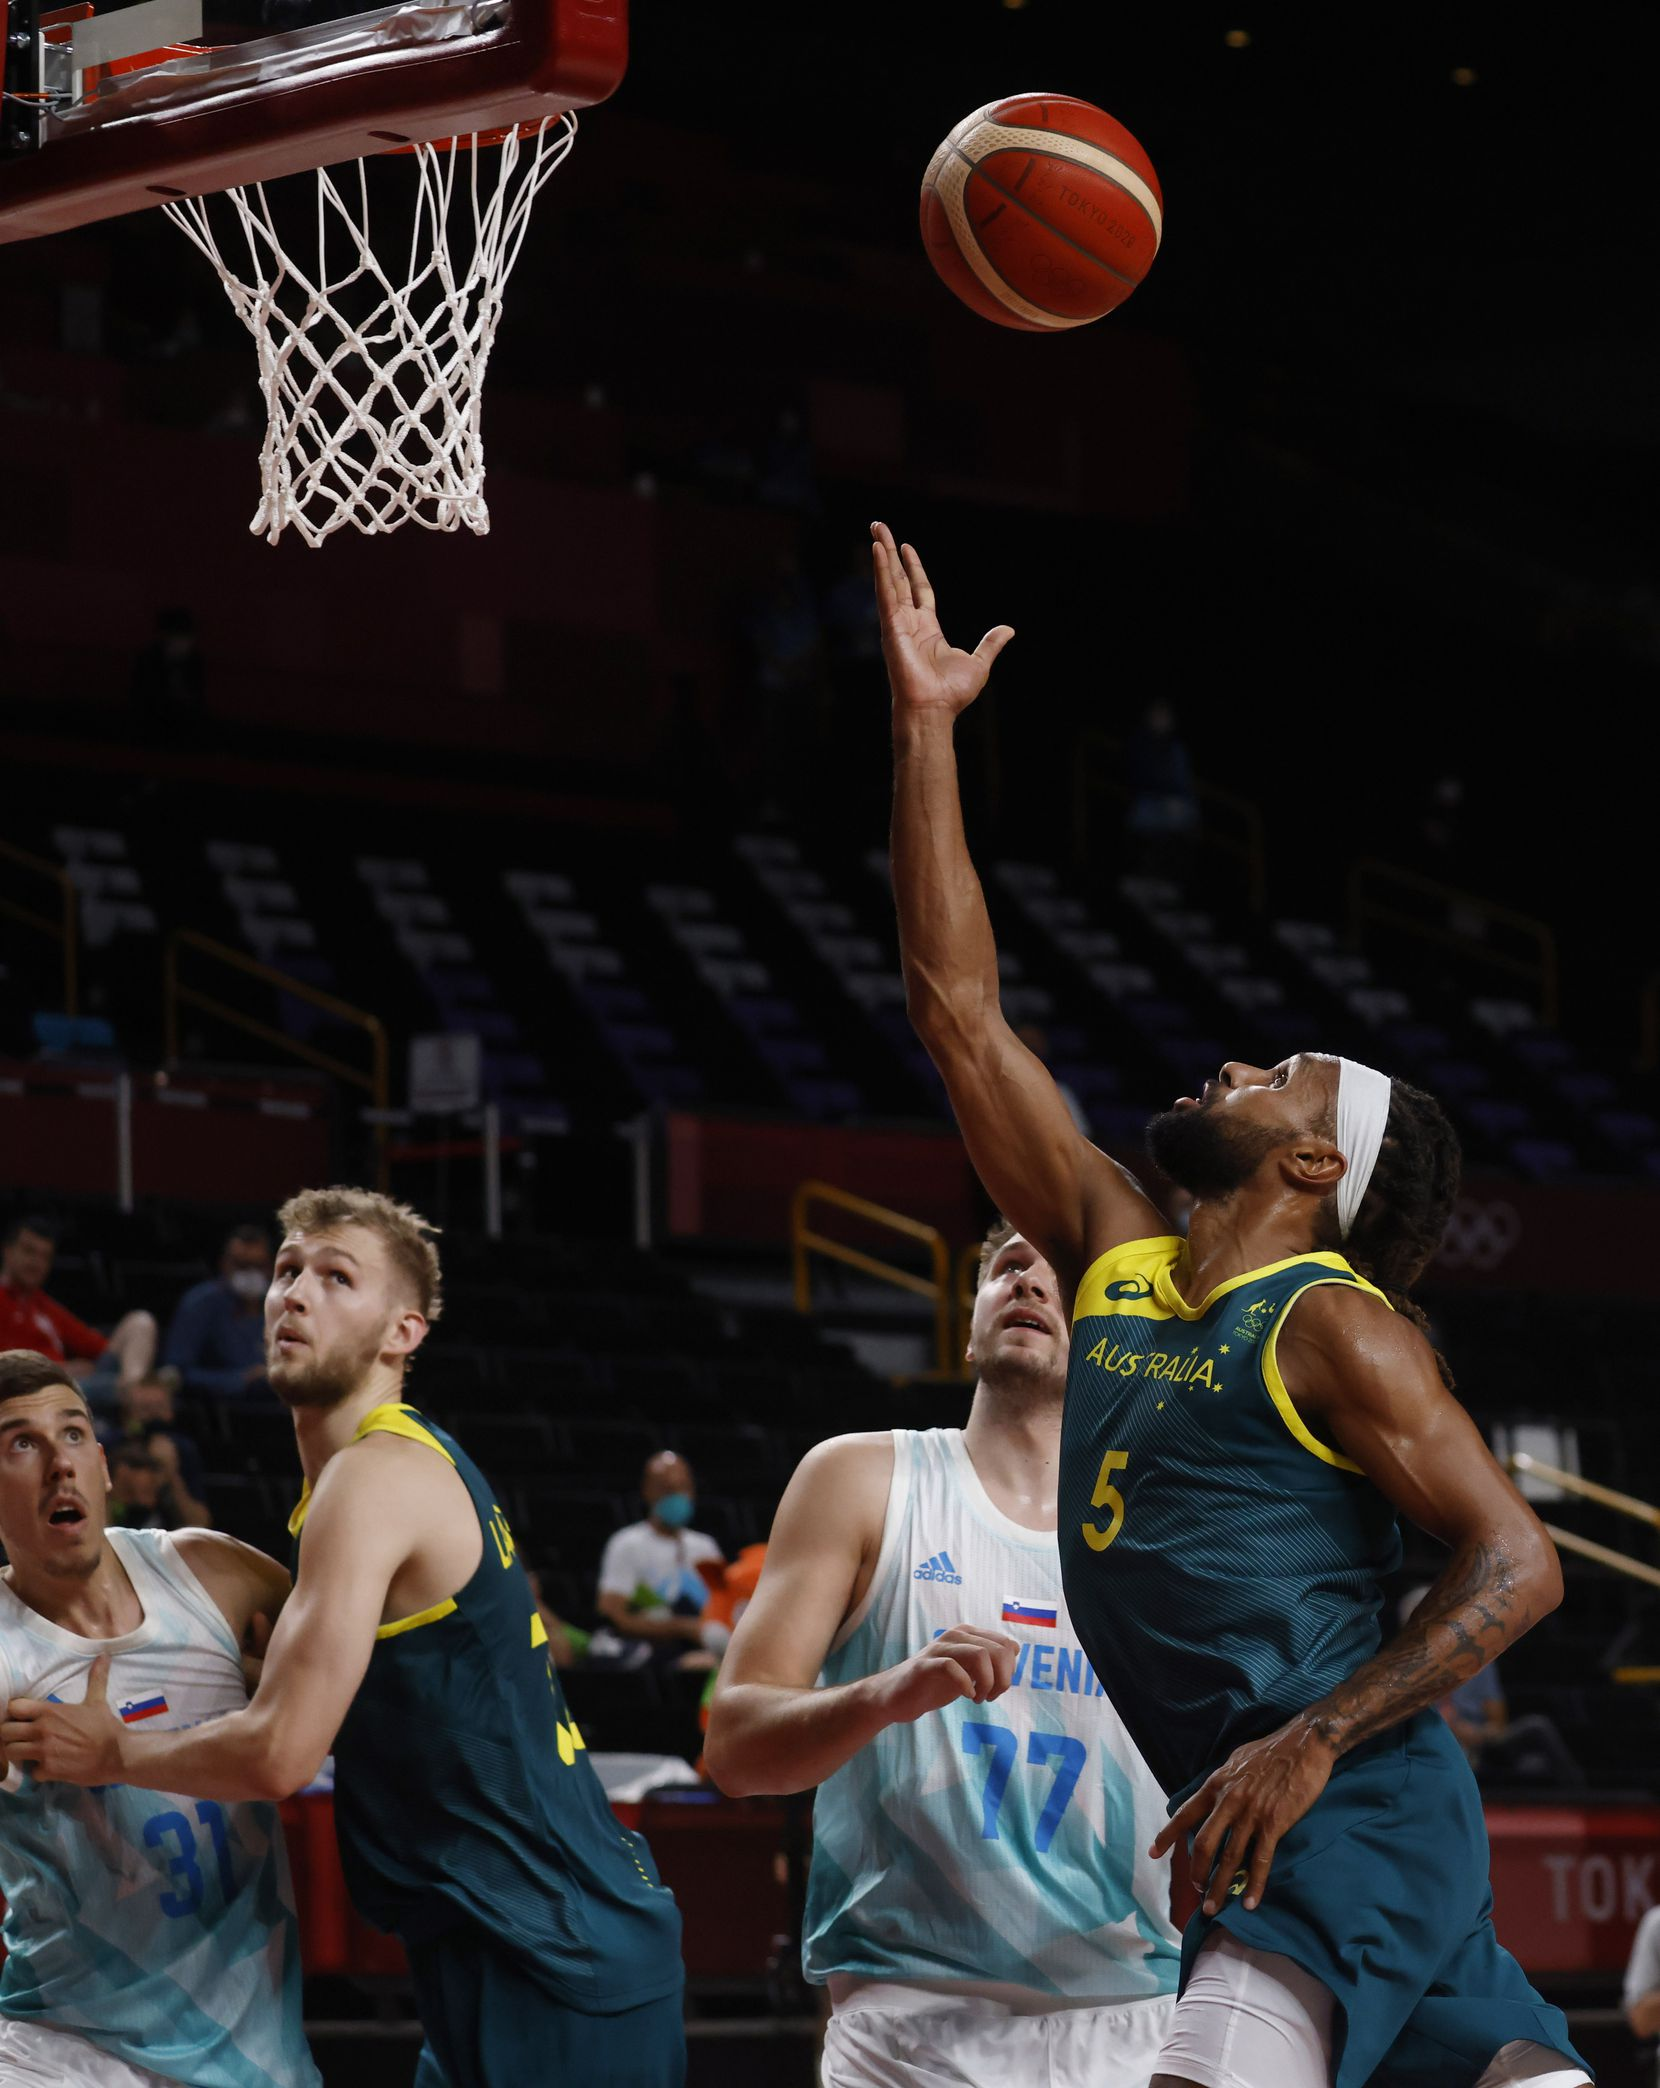 Australia's Patty Mills (5) attempts a layup in front of Slovenia's Luka Doncic (77) during the third quarter of play in the bronze medal basketball game at the postponed 2020 Tokyo Olympics at Saitama Super Arena, on Saturday, August 7, 2021, in Saitama, Japan. (Vernon Bryant/The Dallas Morning News)